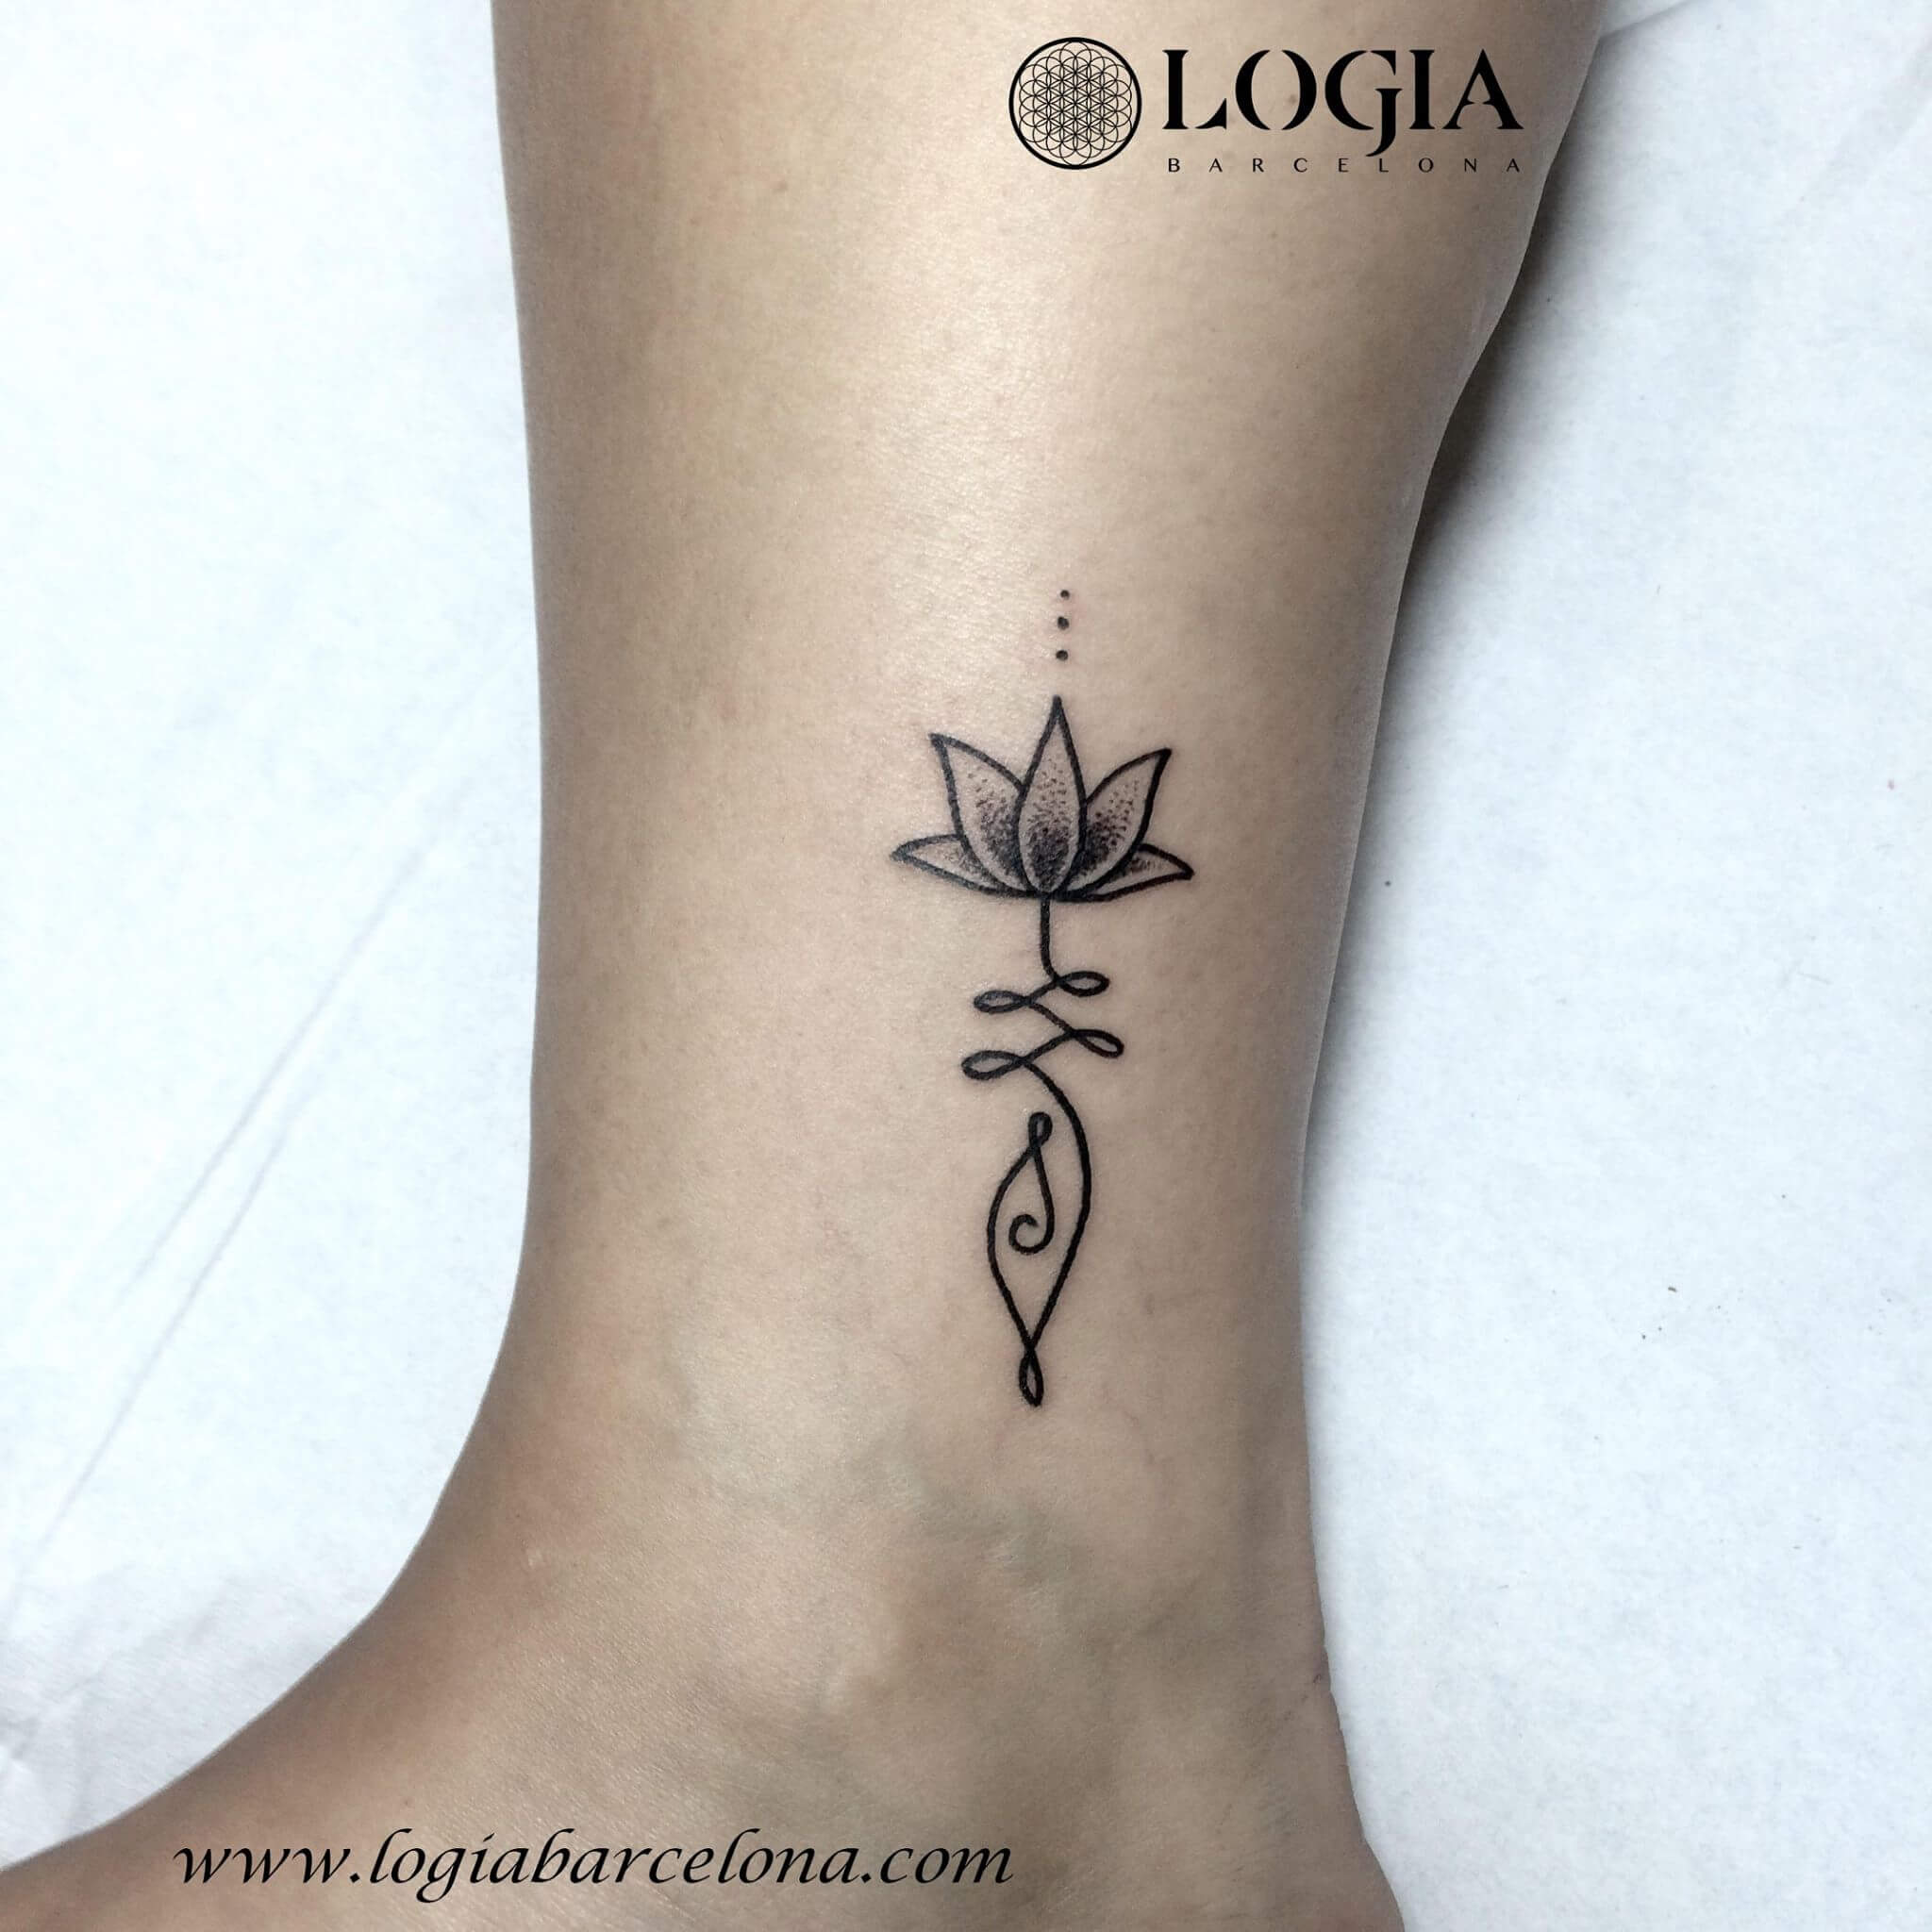 Tatuajes de flor de loto ideas para tatuajes logia tattoo for Tattoo de flores